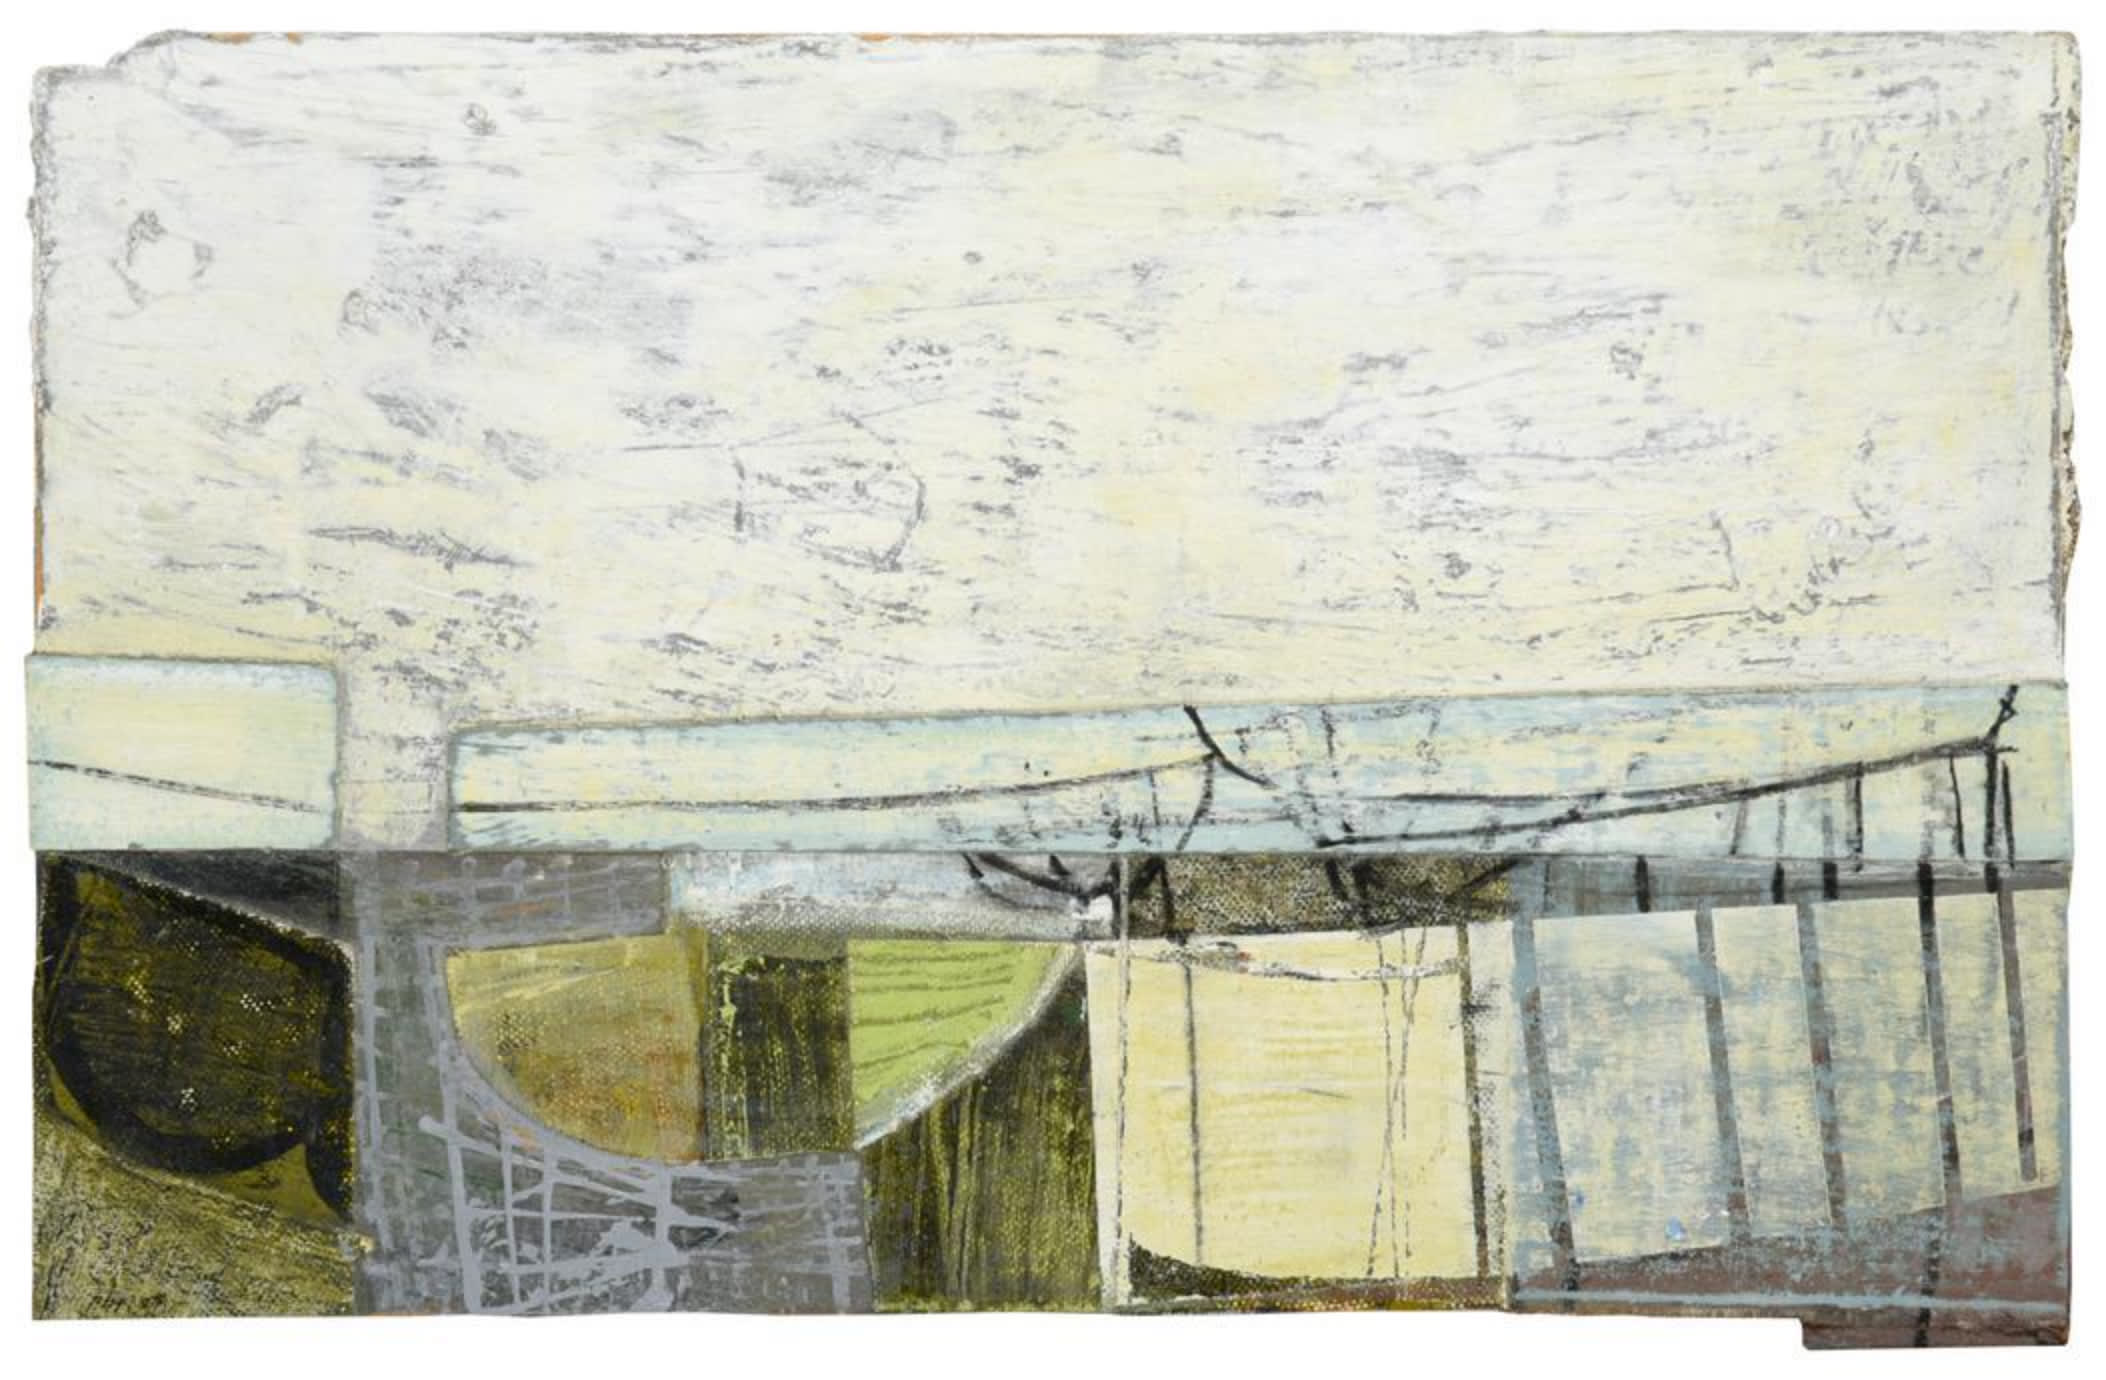 """<span class=""""link fancybox-details-link""""><a href=""""/artists/429-peter-joyce/works/7550-peter-joyce-sea-defence-and-slipway-2007/"""">View Detail Page</a></span><div class=""""artist""""><strong>Peter Joyce</strong></div> b. 1964 <div class=""""title""""><em>Sea Defence and Slipway</em>, 2007</div> <div class=""""signed_and_dated"""">initialled and dated (20)07, inscribed verso</div> <div class=""""medium"""">acrylic and collage on board, </div> <div class=""""dimensions"""">h 27.5 x w 42.5 cm</div><div class=""""copyright_line"""">Copyright The Artist</div>"""